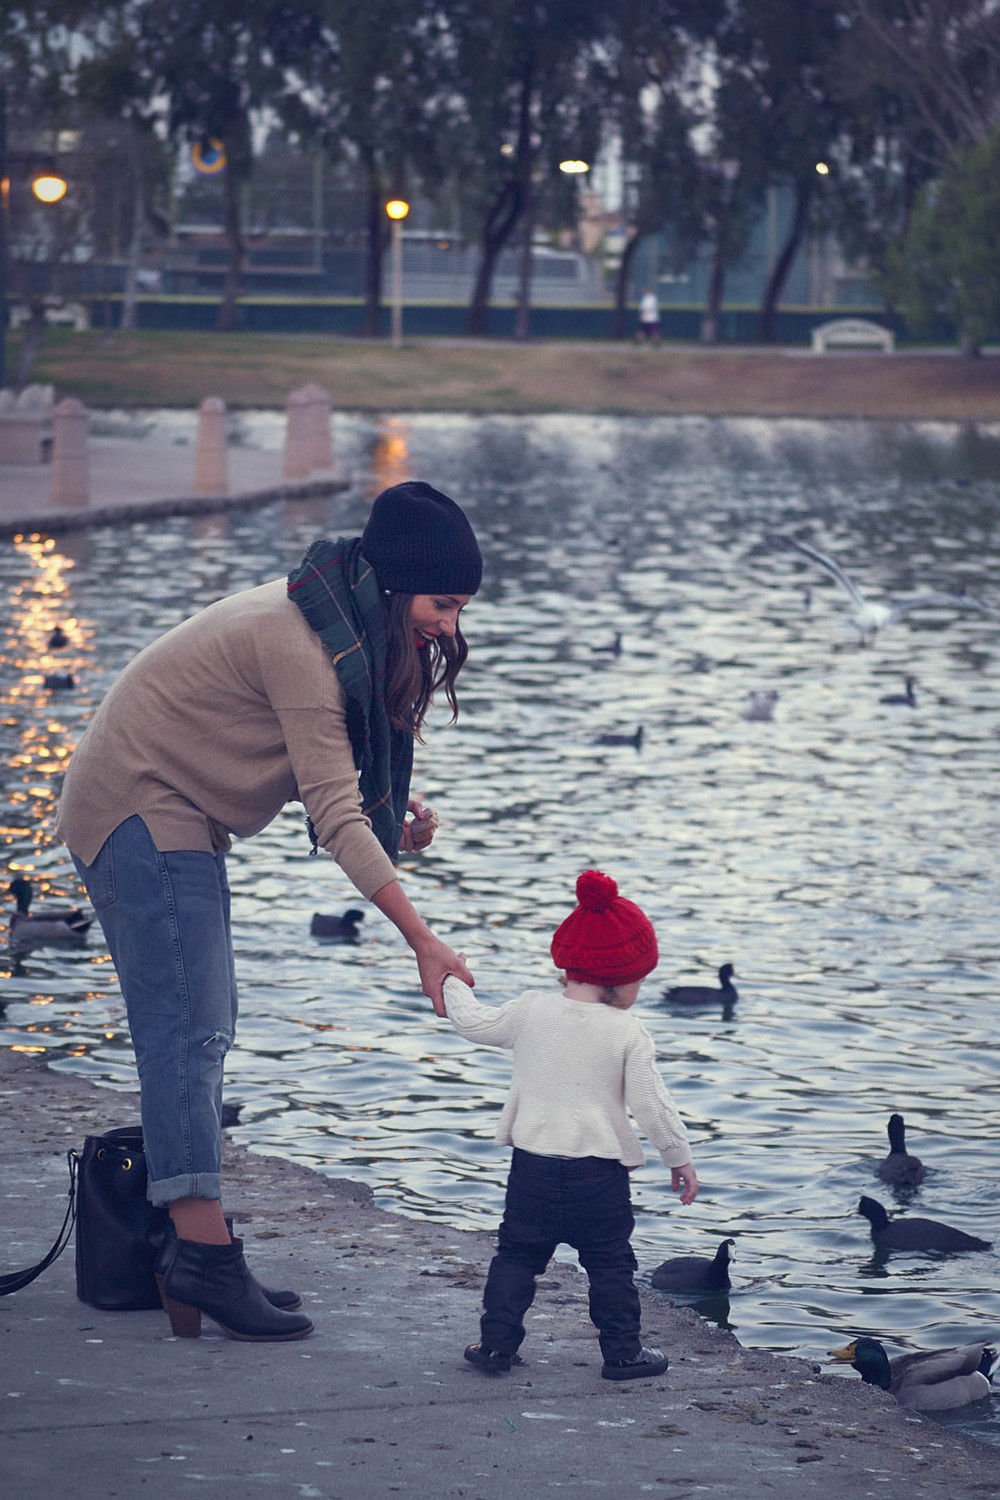 feeding the ducks at the park